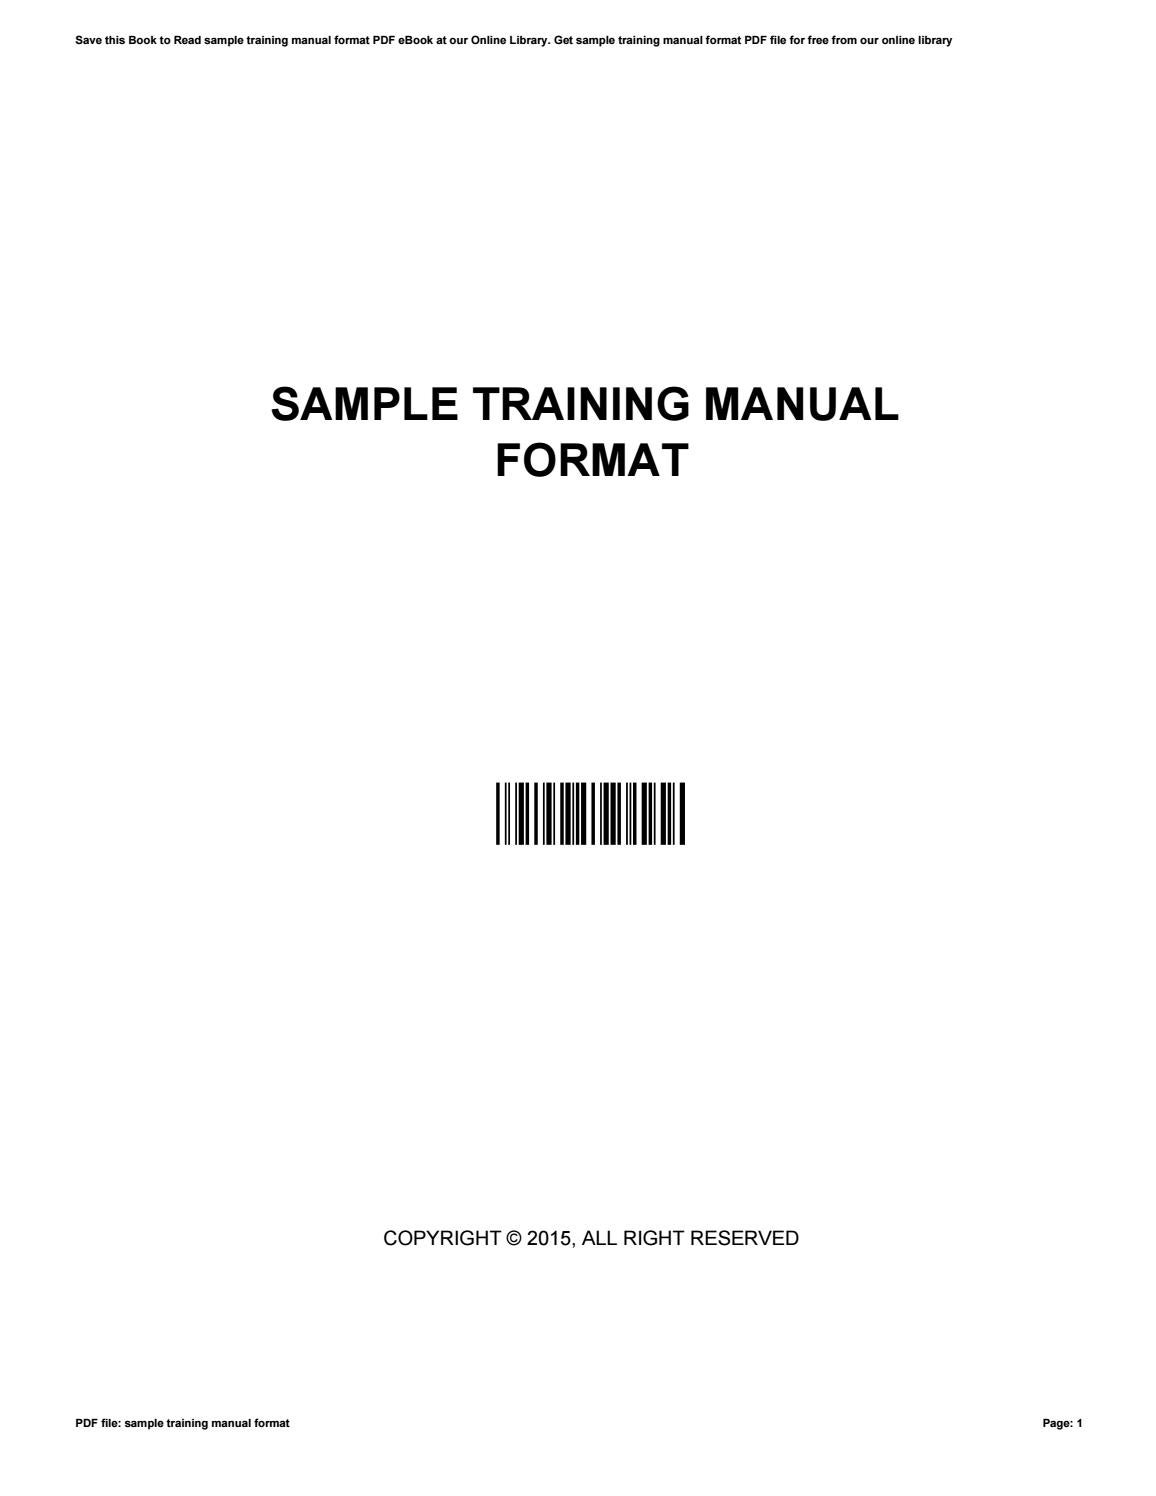 Sample Training Manual Format By Ruththomas4460 Issuu